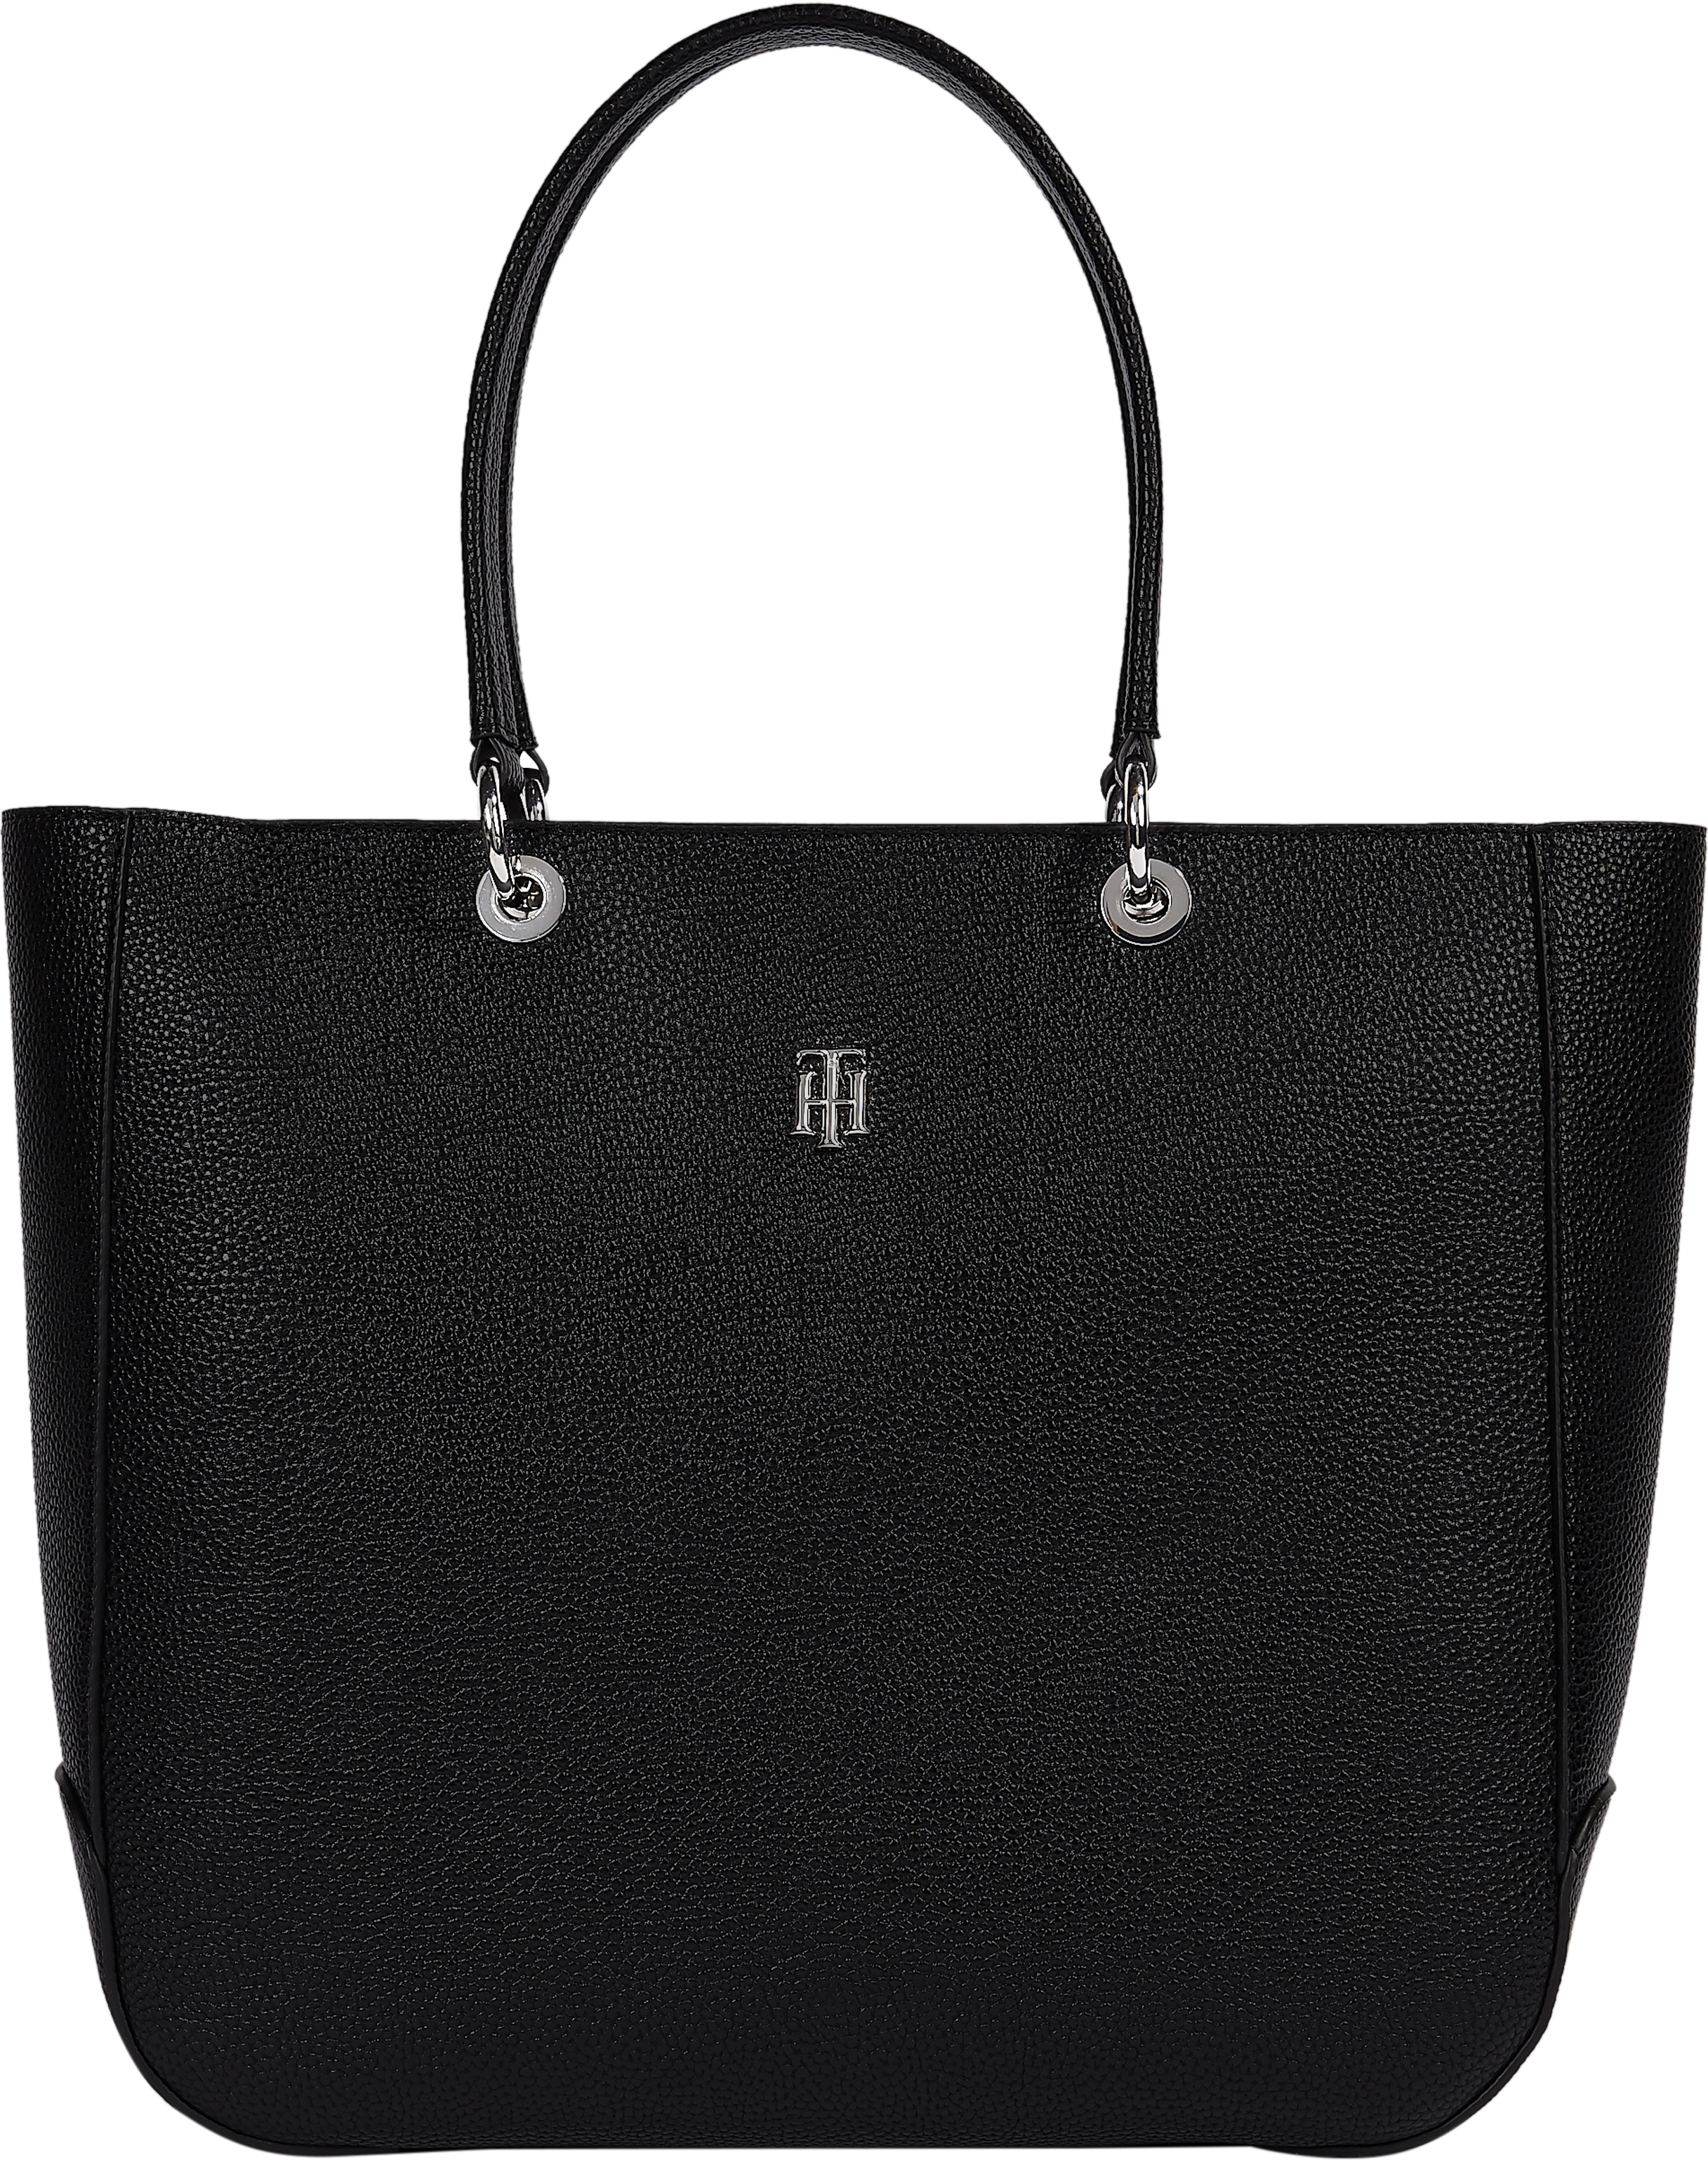 Tommy Hilfiger TH ESSENCE TOTE